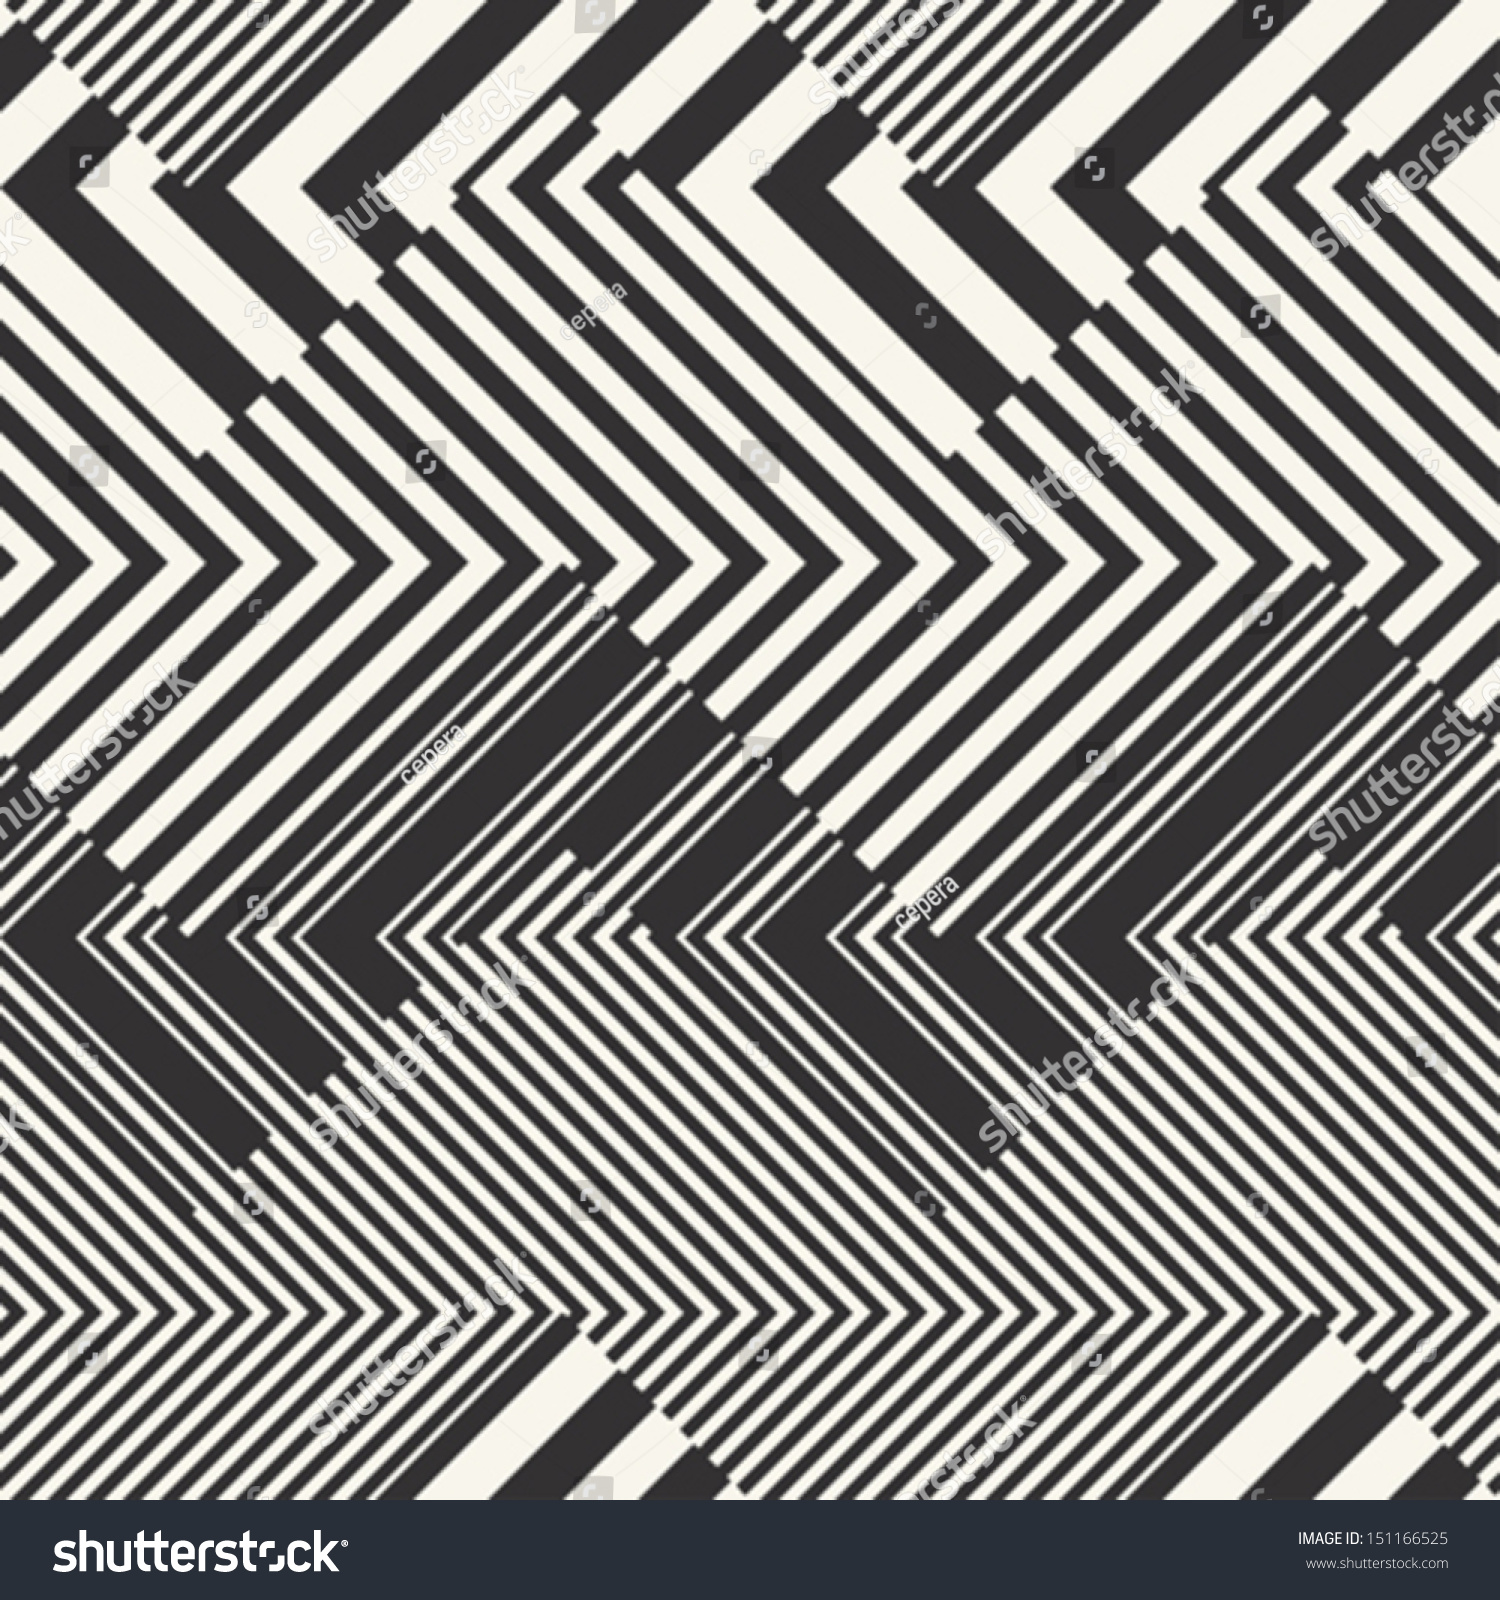 Edit Vectors Free Online - Abstract striped | Shutterstock